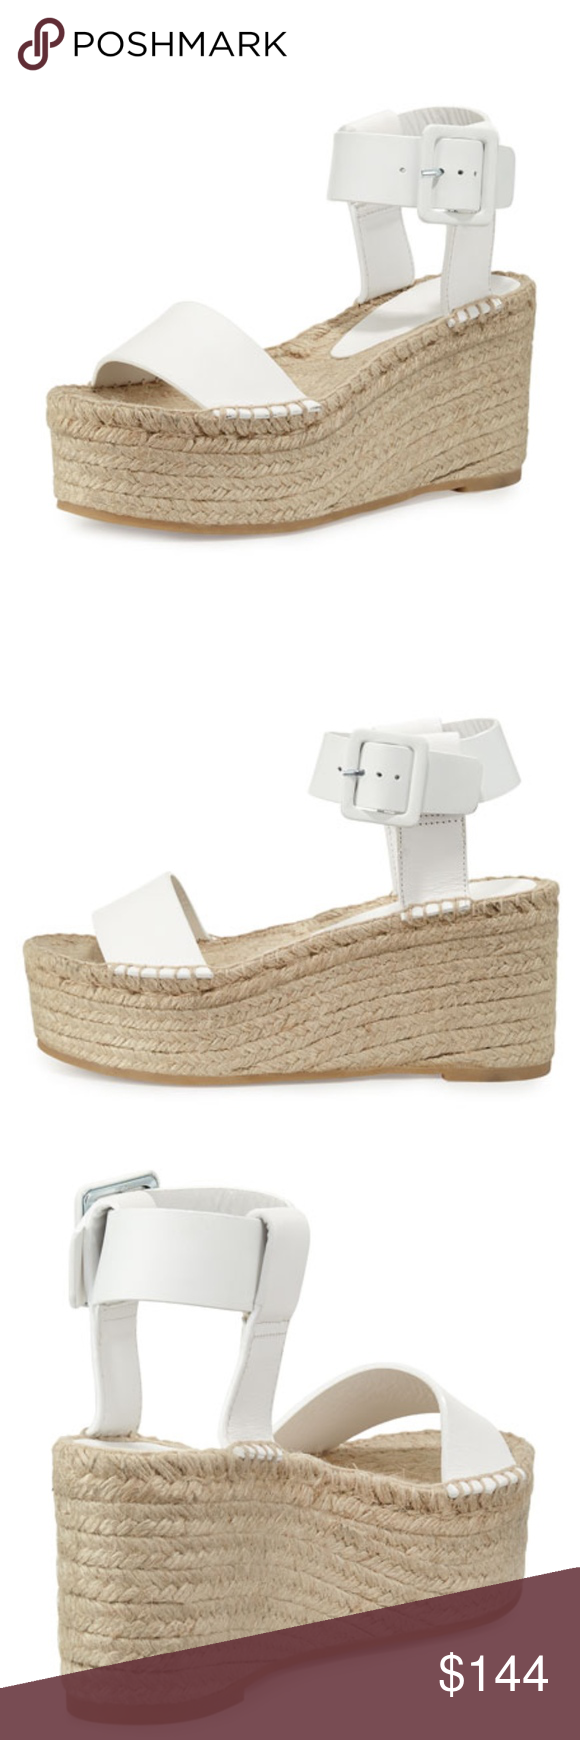 edf0c82382d VINCE ABBY LEATHER ESPADRILLE SANDAL PLASTER NEW IN BOX Size  7 Color   White DETAILS